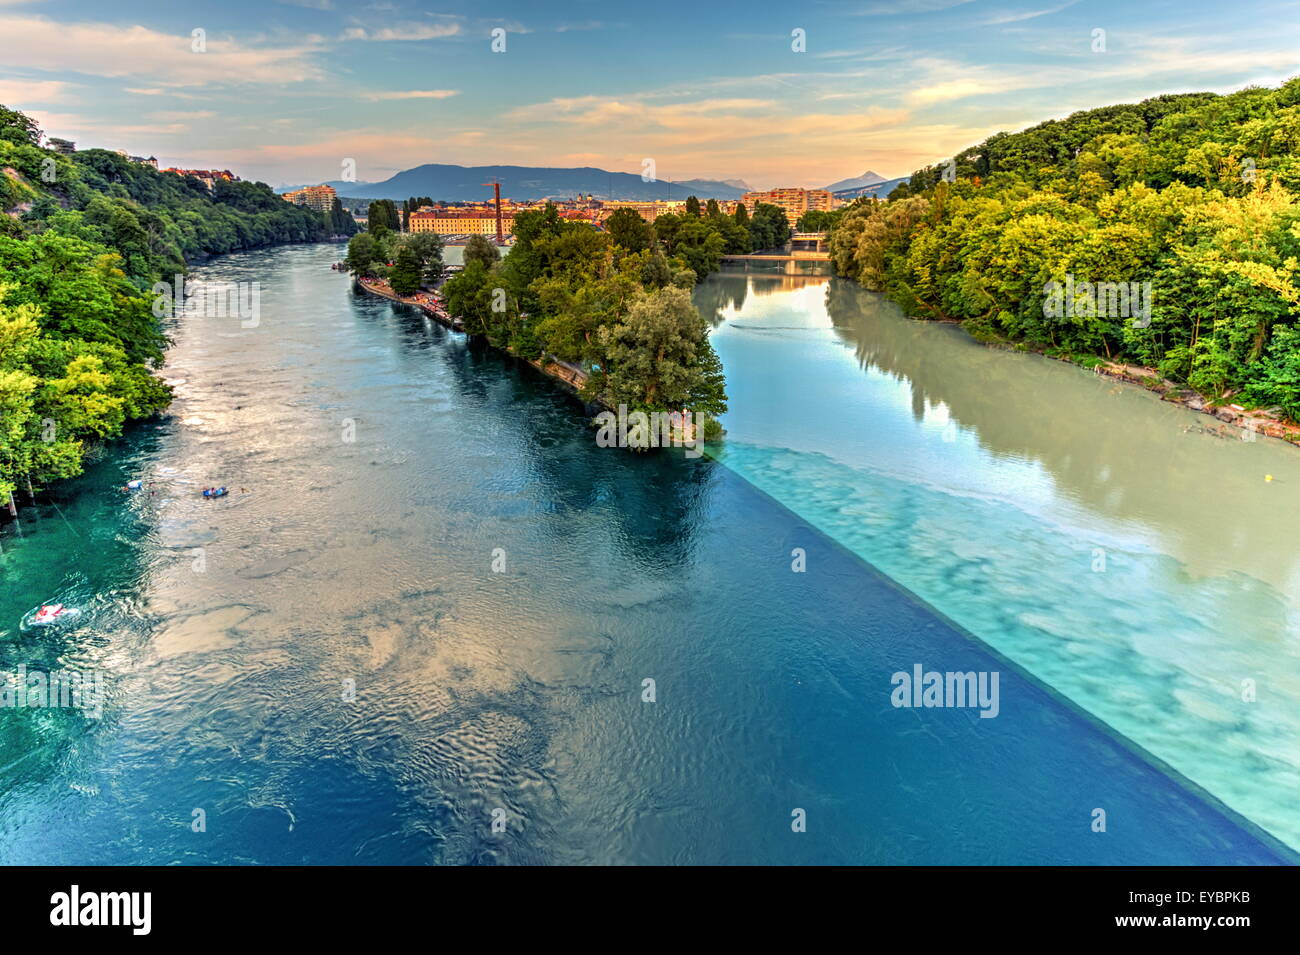 Rhone and Arve river confluence by sunset, Geneva, Switzerland, HDR - Stock Image